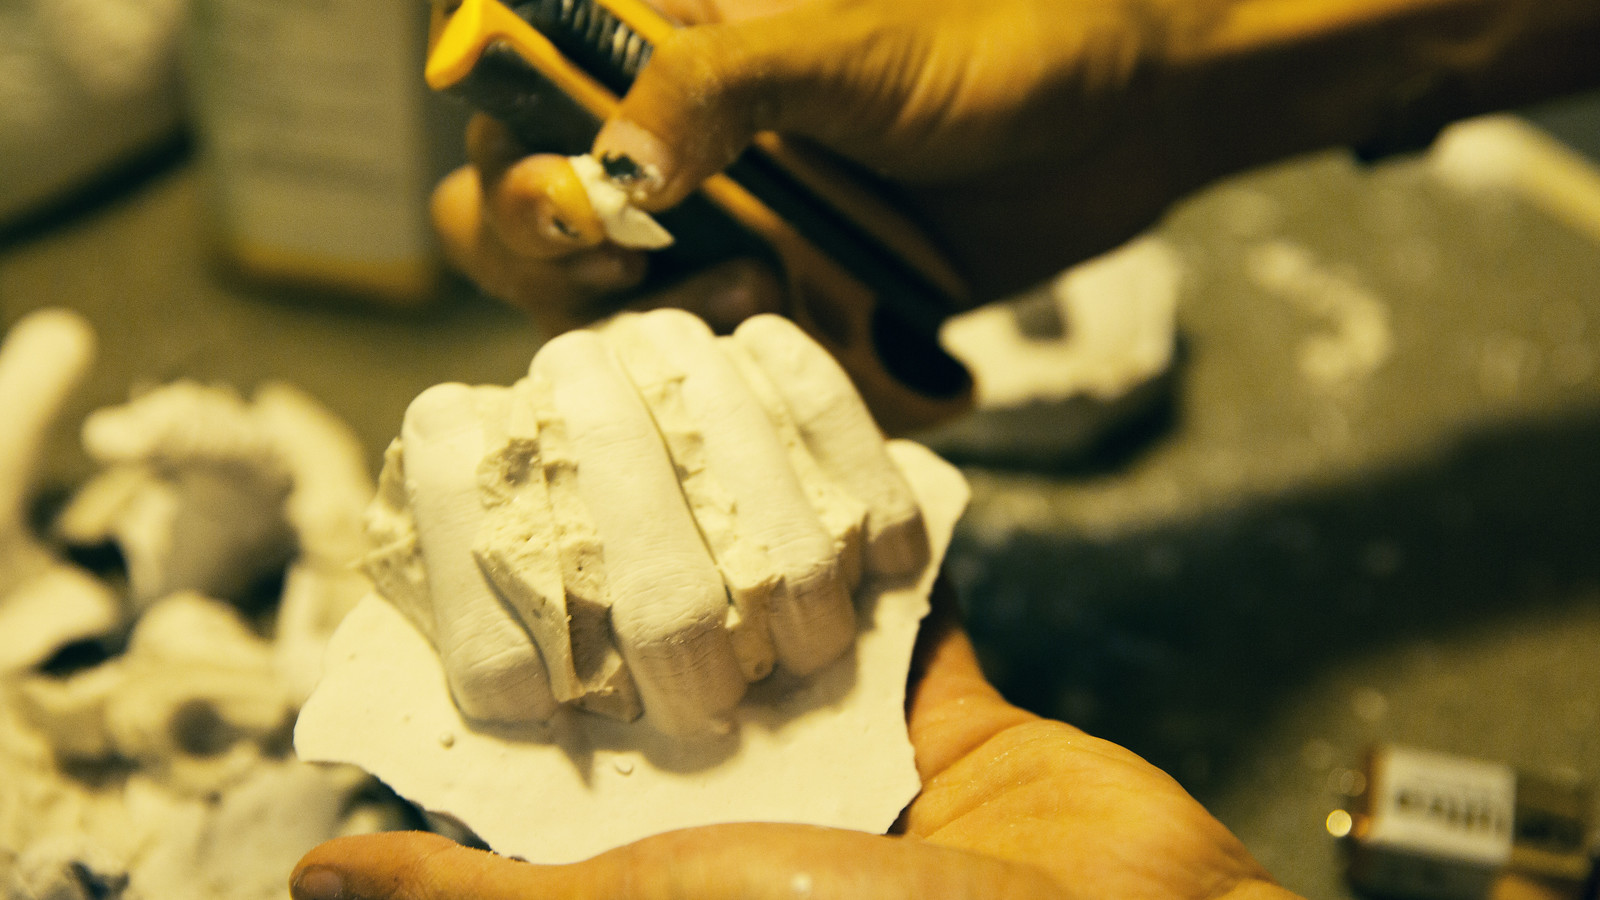 0895alginate_handsappear